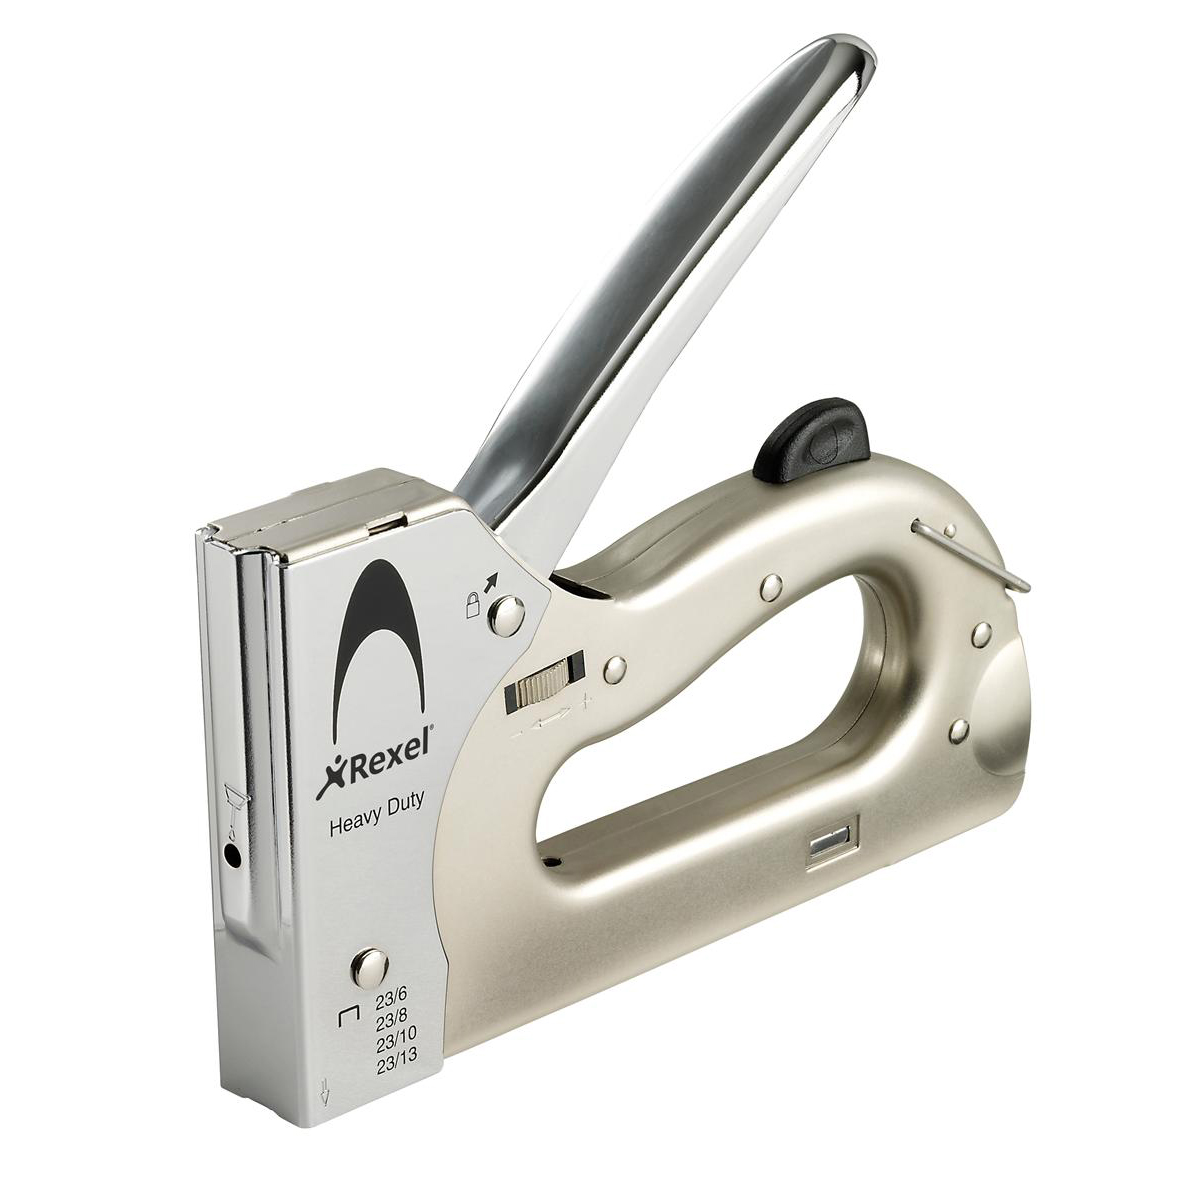 Staple guns Rexel Tacker Heavy Duty Bottom-loading Adjustable No.23/6 No23/8 No.23/13 Ref 2101209